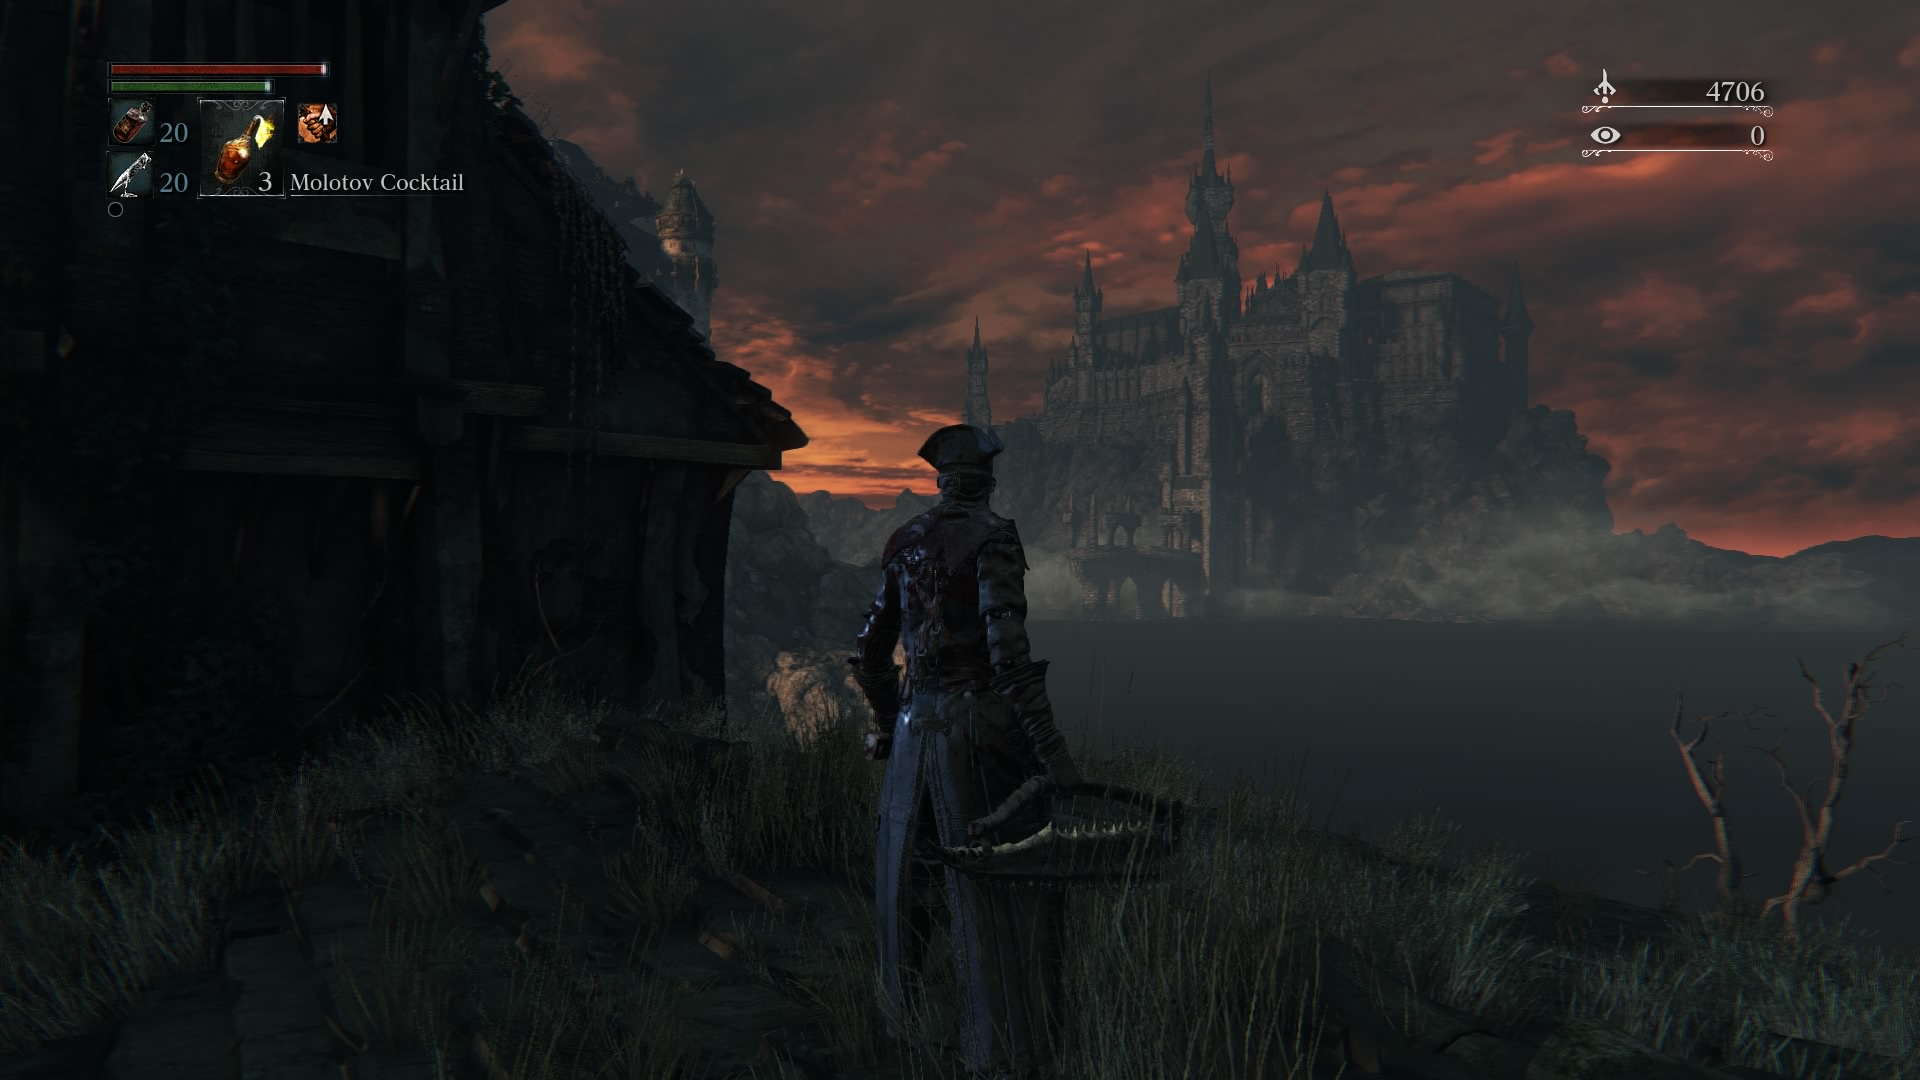 Bloodborne [Scenic Shot]